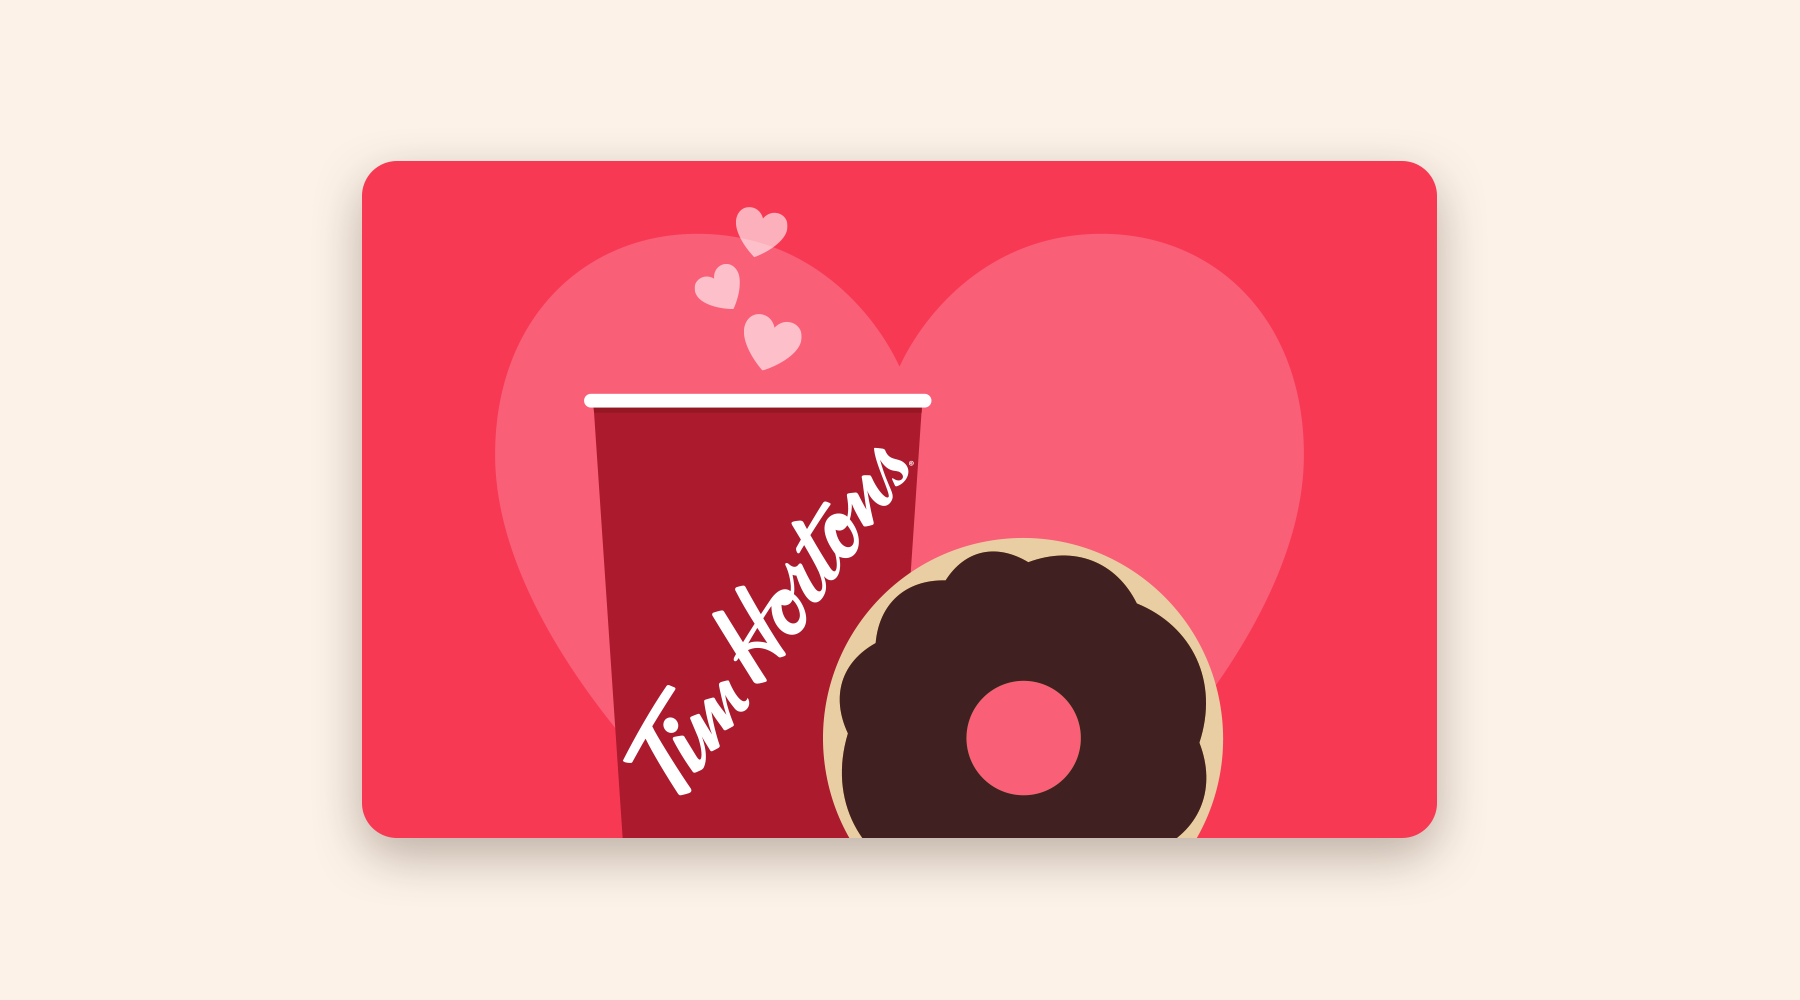 Valentine's Day gift card with a cup of coffee and a donut